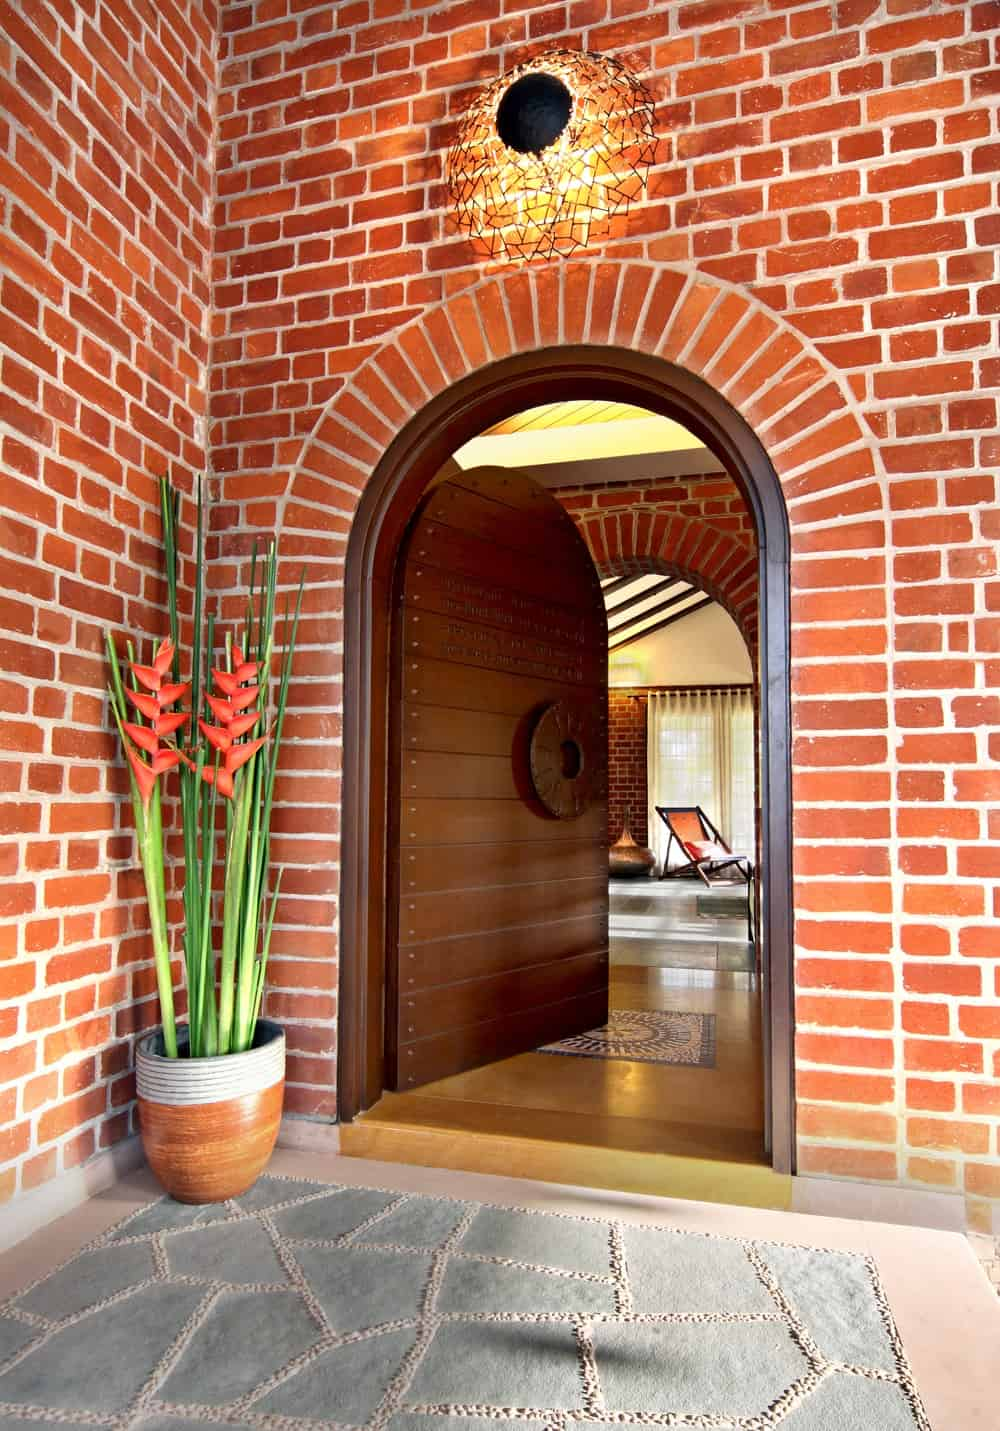 This is a look at the main entrance of the house with a wooden arched main door adorned with a potted plant on the side.